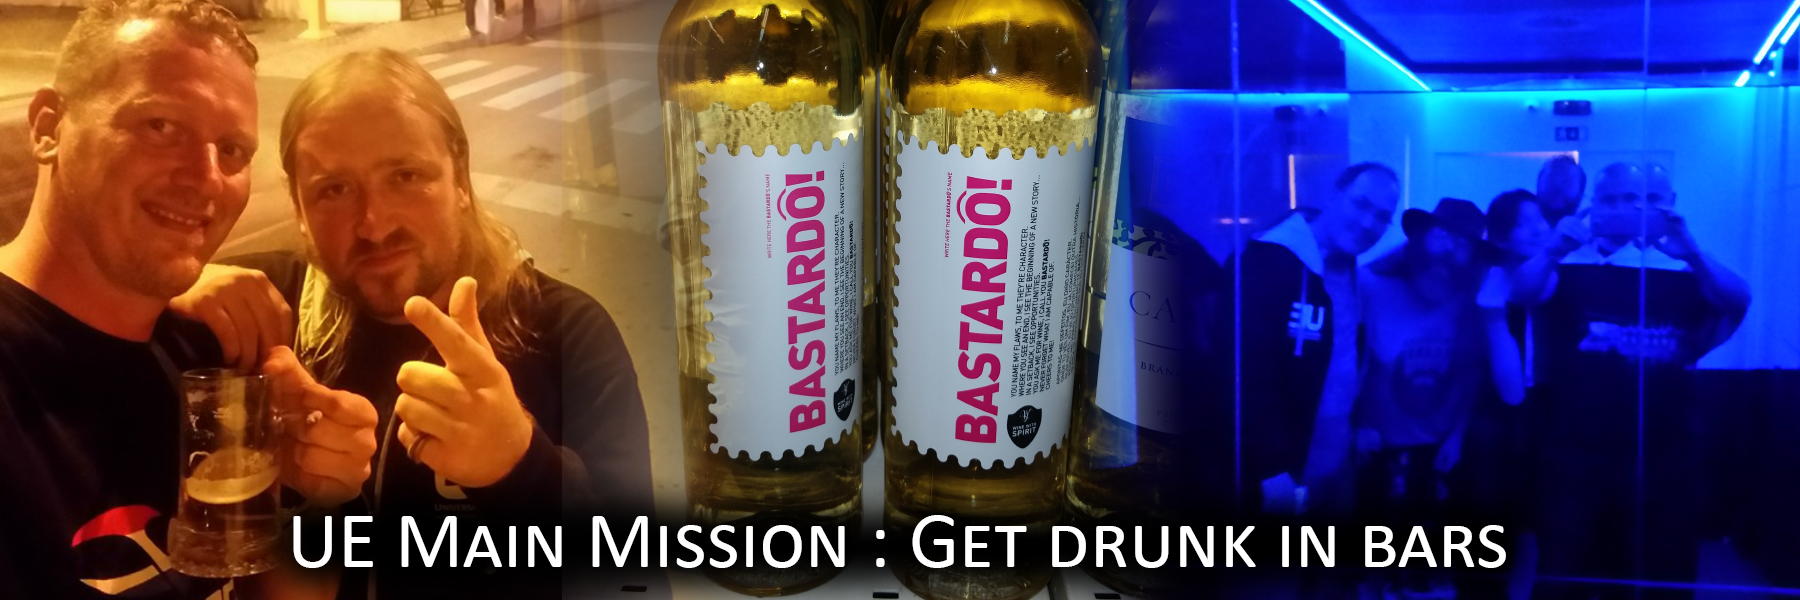 UE Main Mission : Get drunk in bars